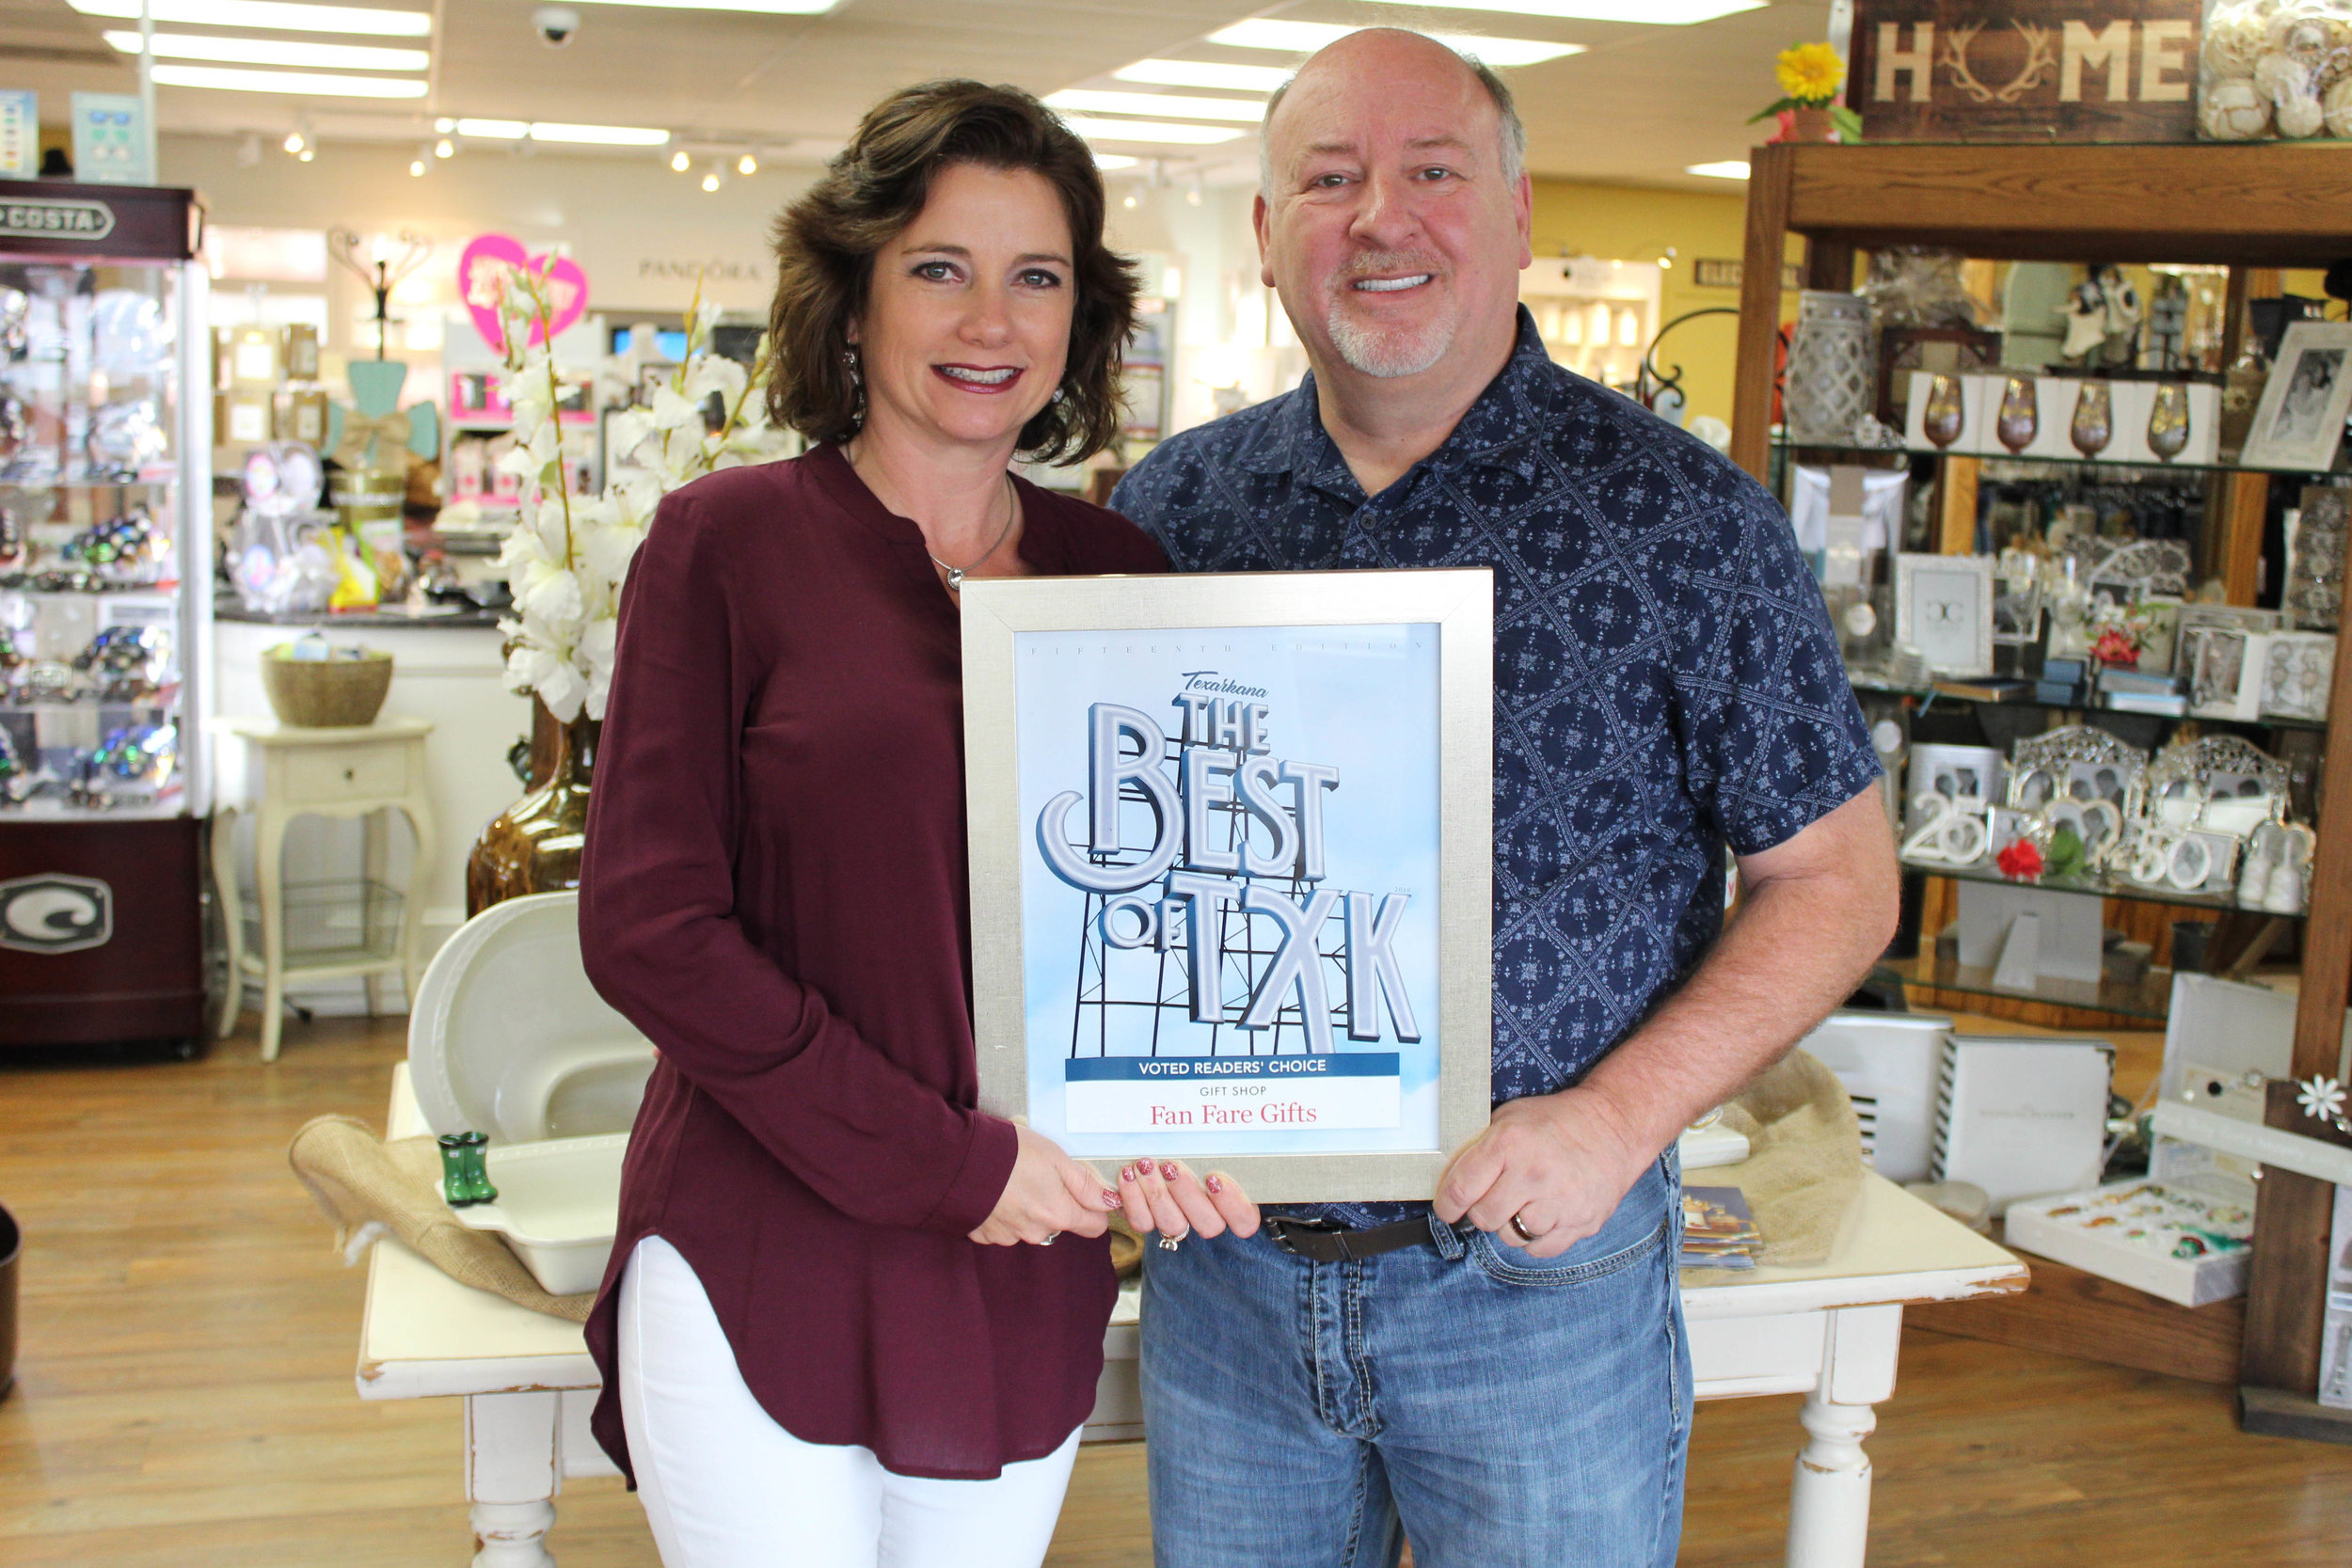 FAN FARE GIFTS – Lesa and Tony Asbille